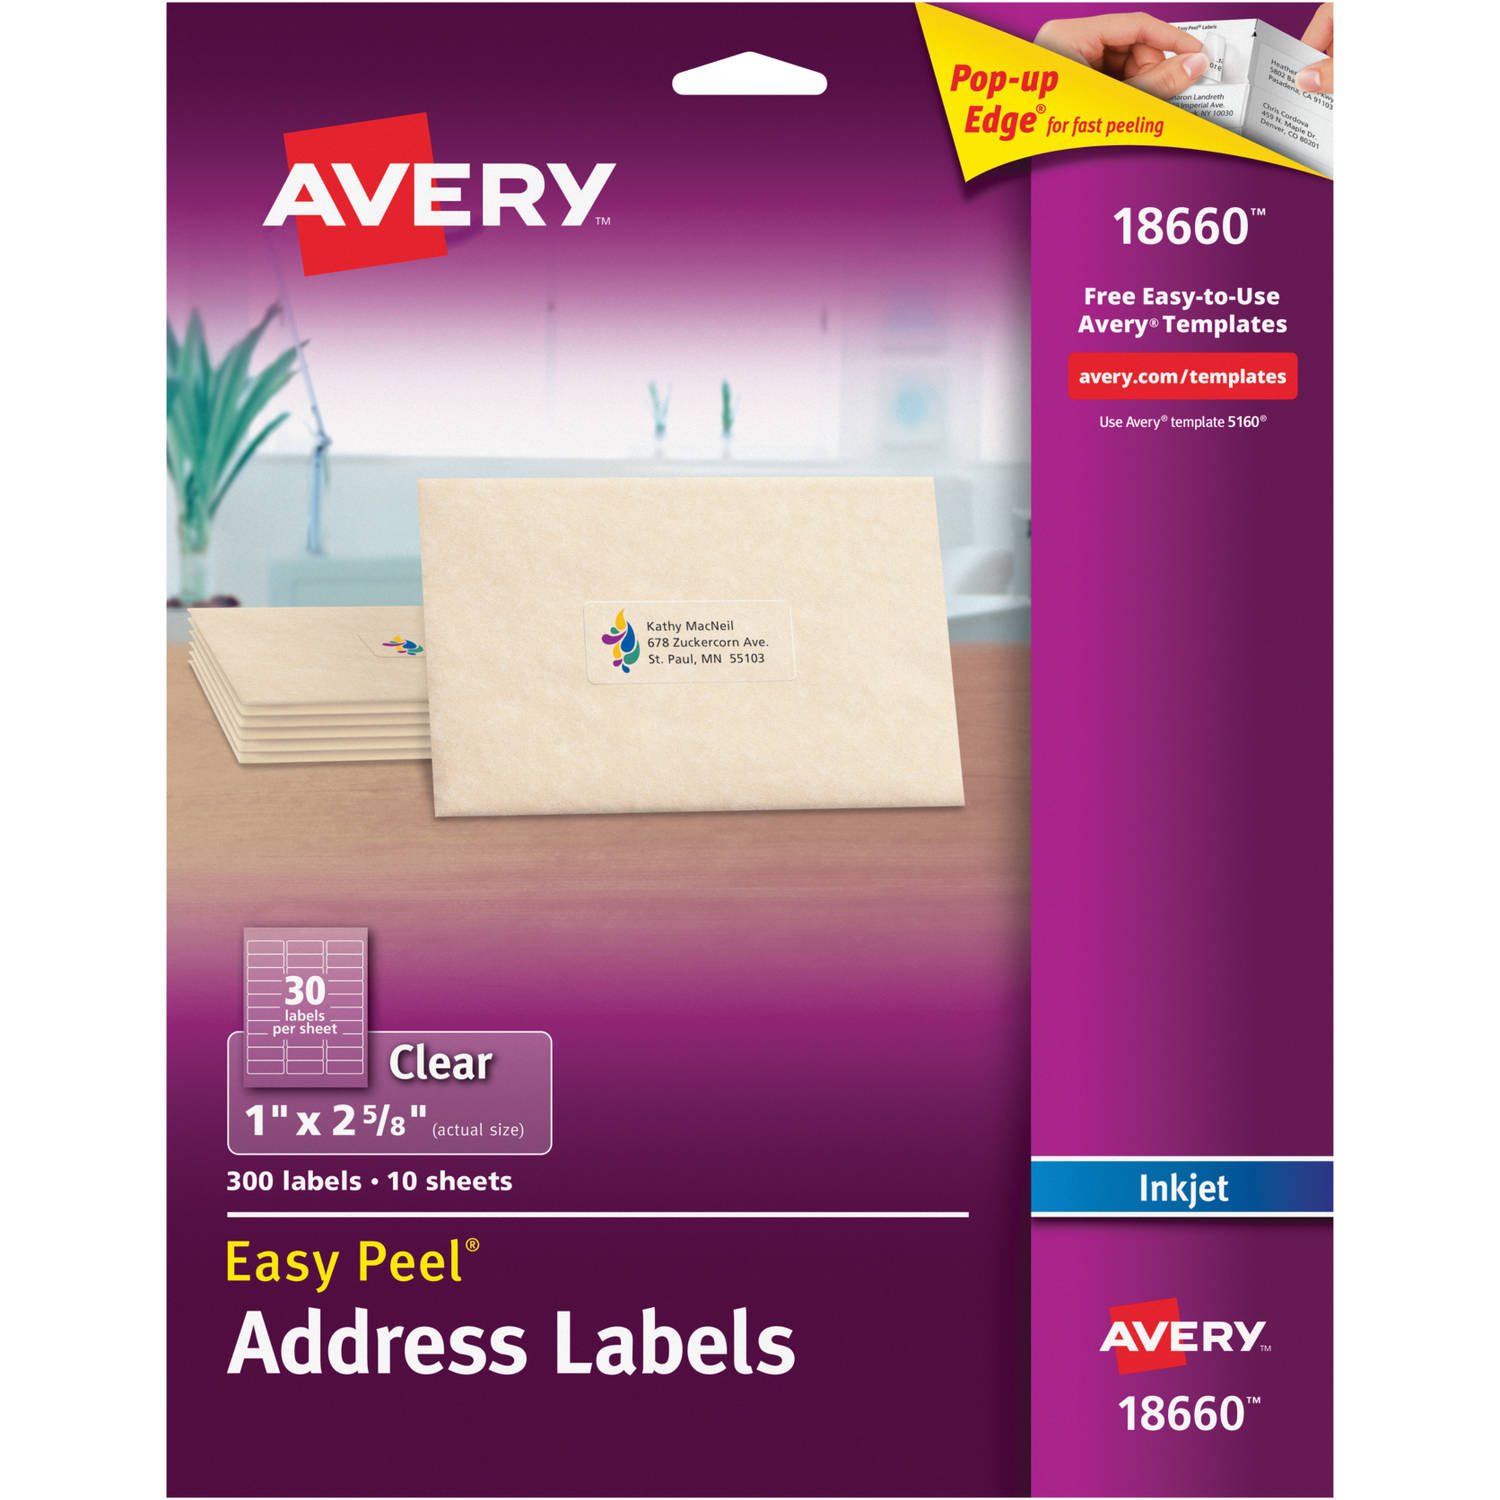 "Avery Easy Peel Address Labels for Inkjet Printers, Clear, 1"" x 2-5/8"", 300 Count"